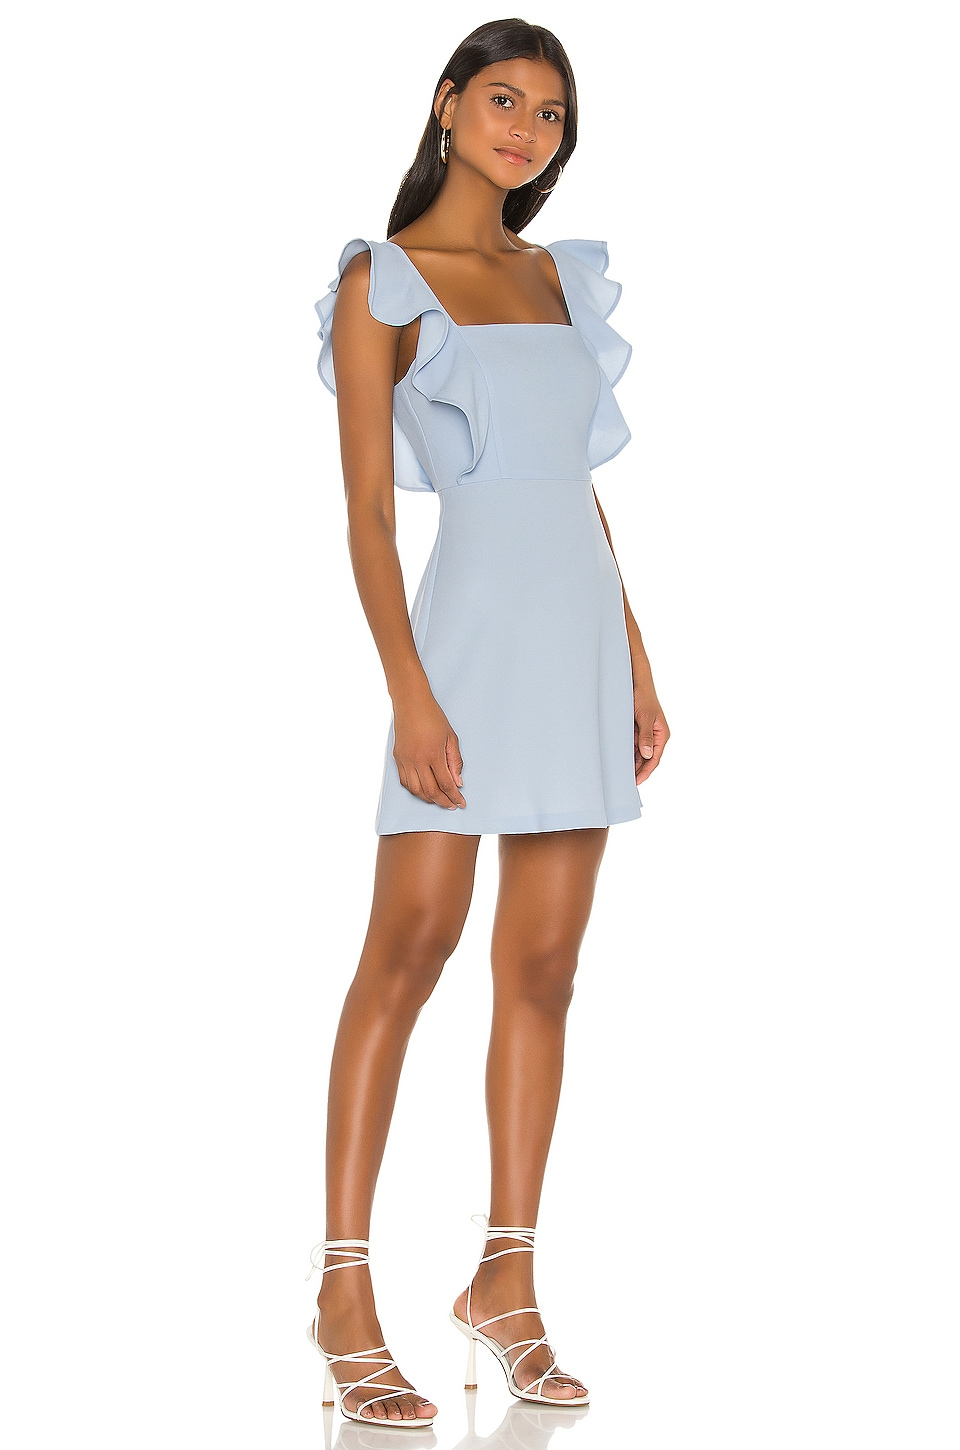 Ruffle Sleeve Square Neck Dress, view 2, click to view large image.